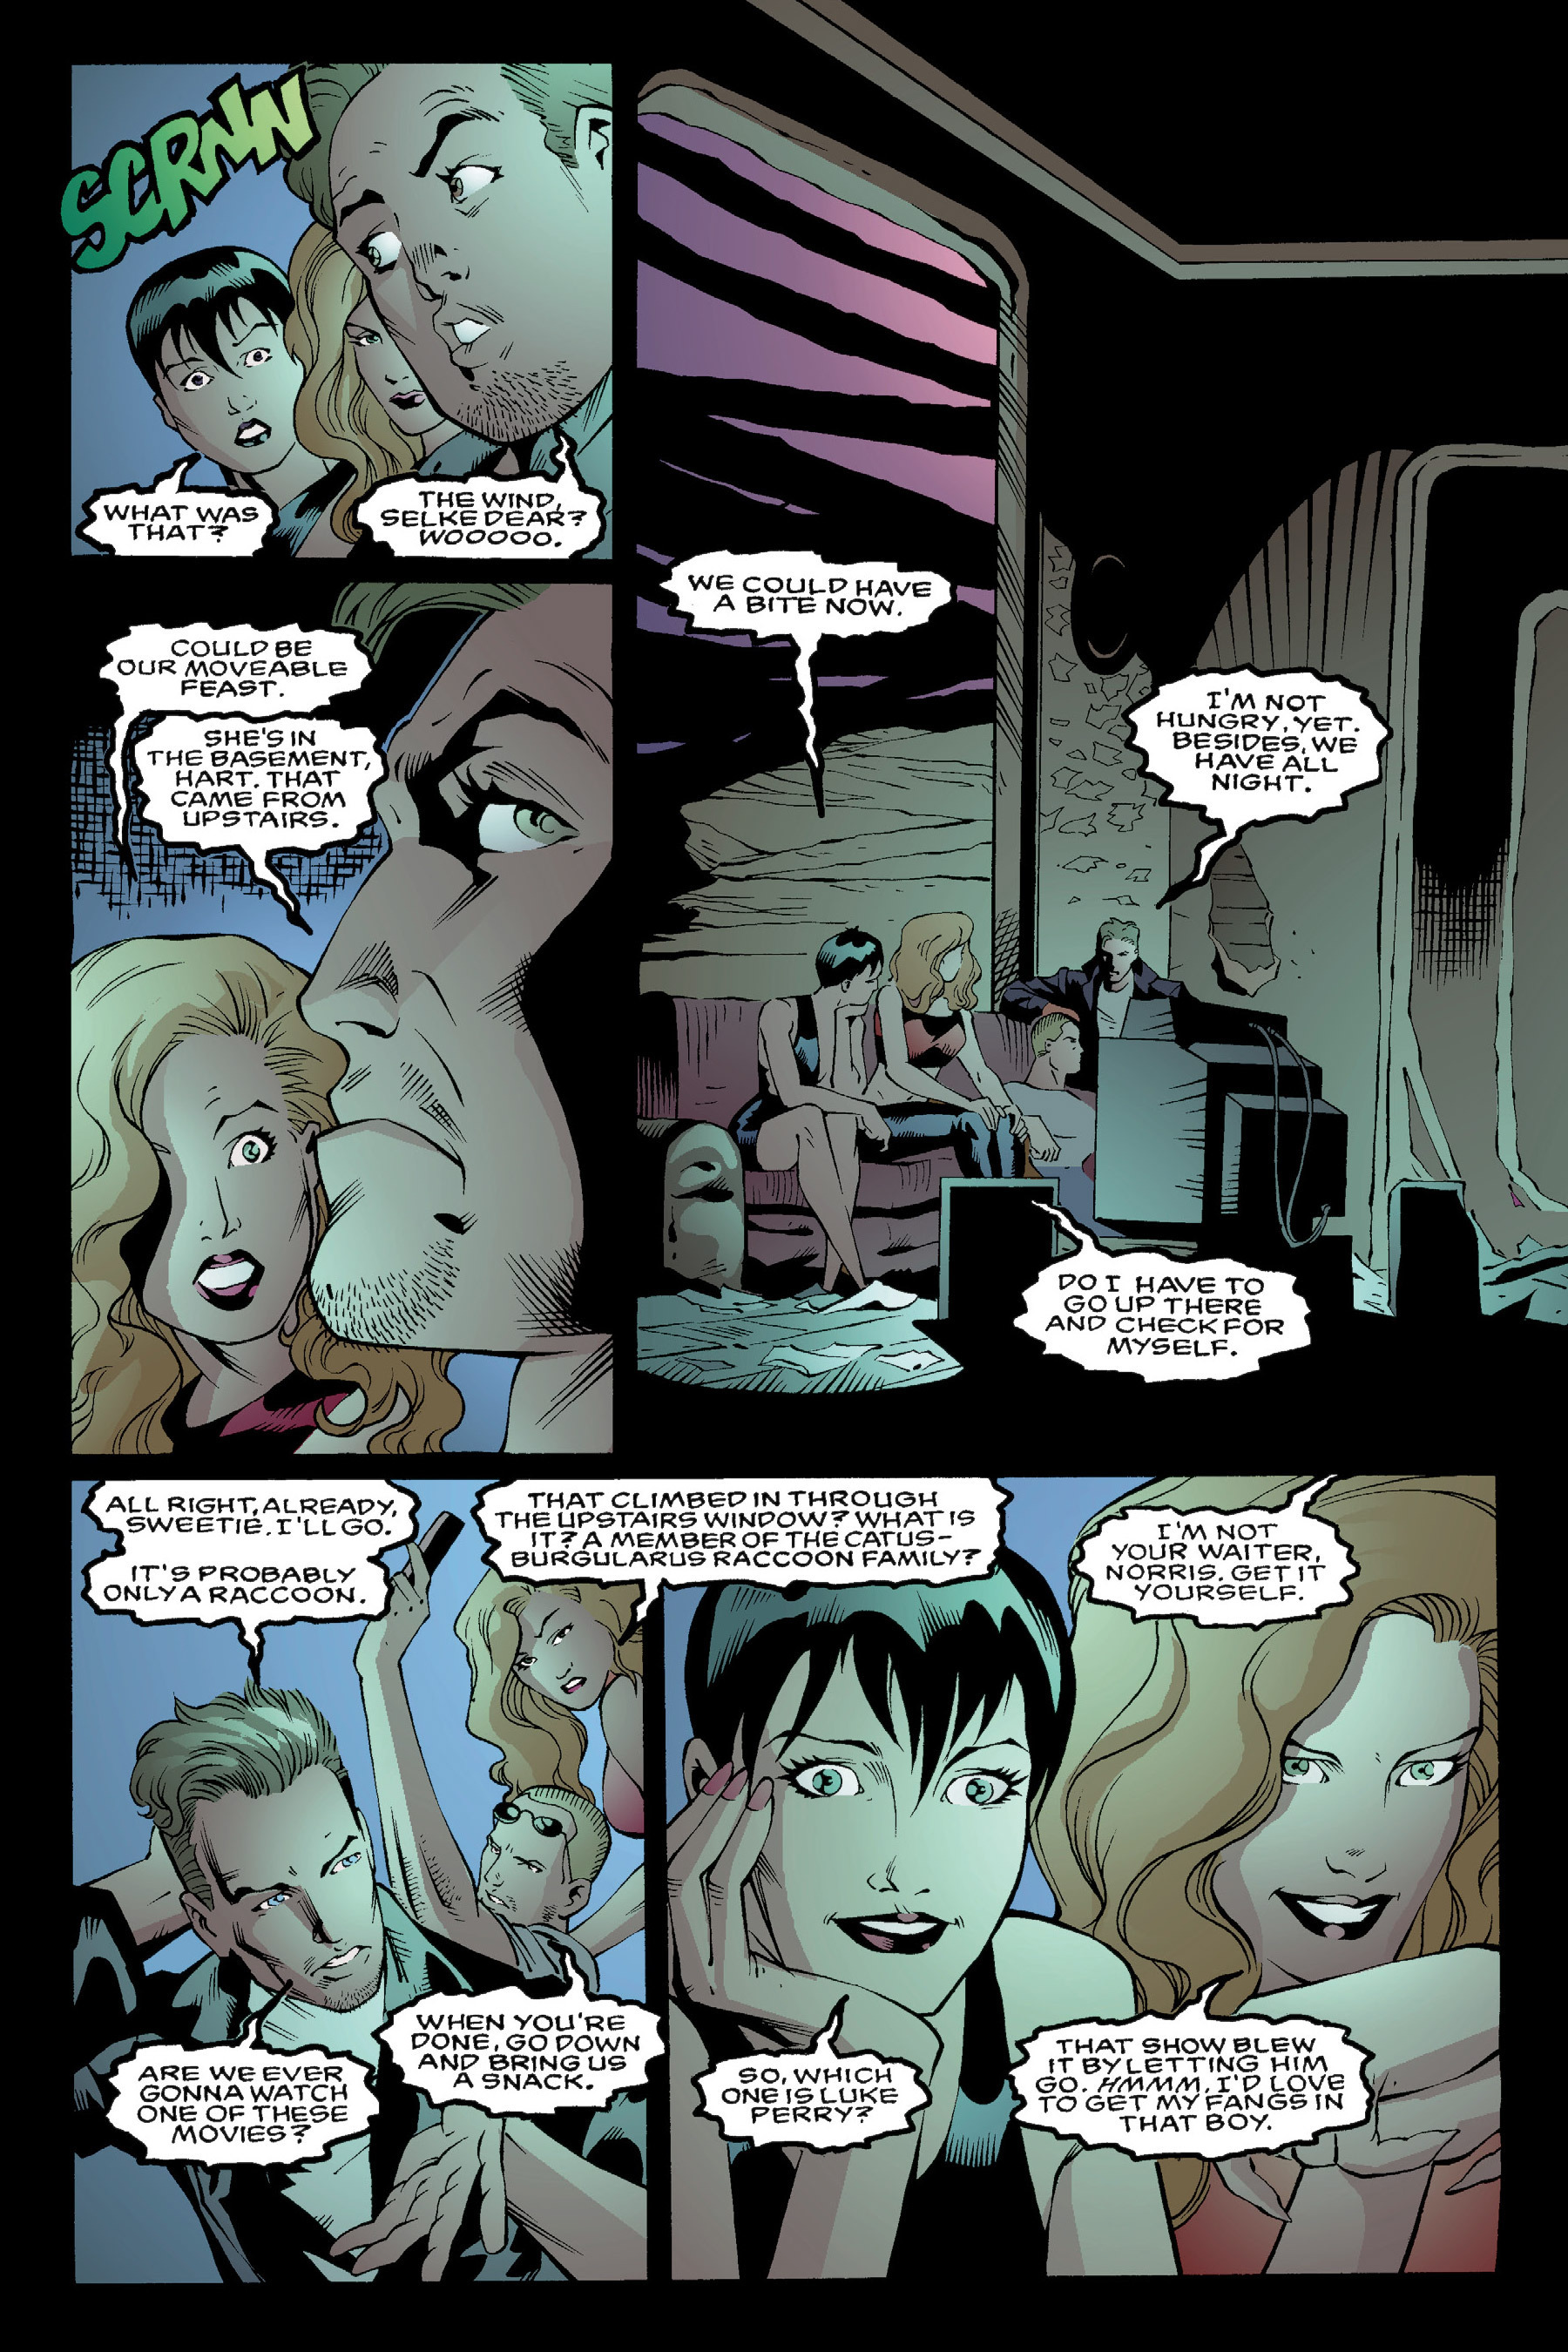 Read online Buffy the Vampire Slayer: Omnibus comic -  Issue # TPB 3 - 45